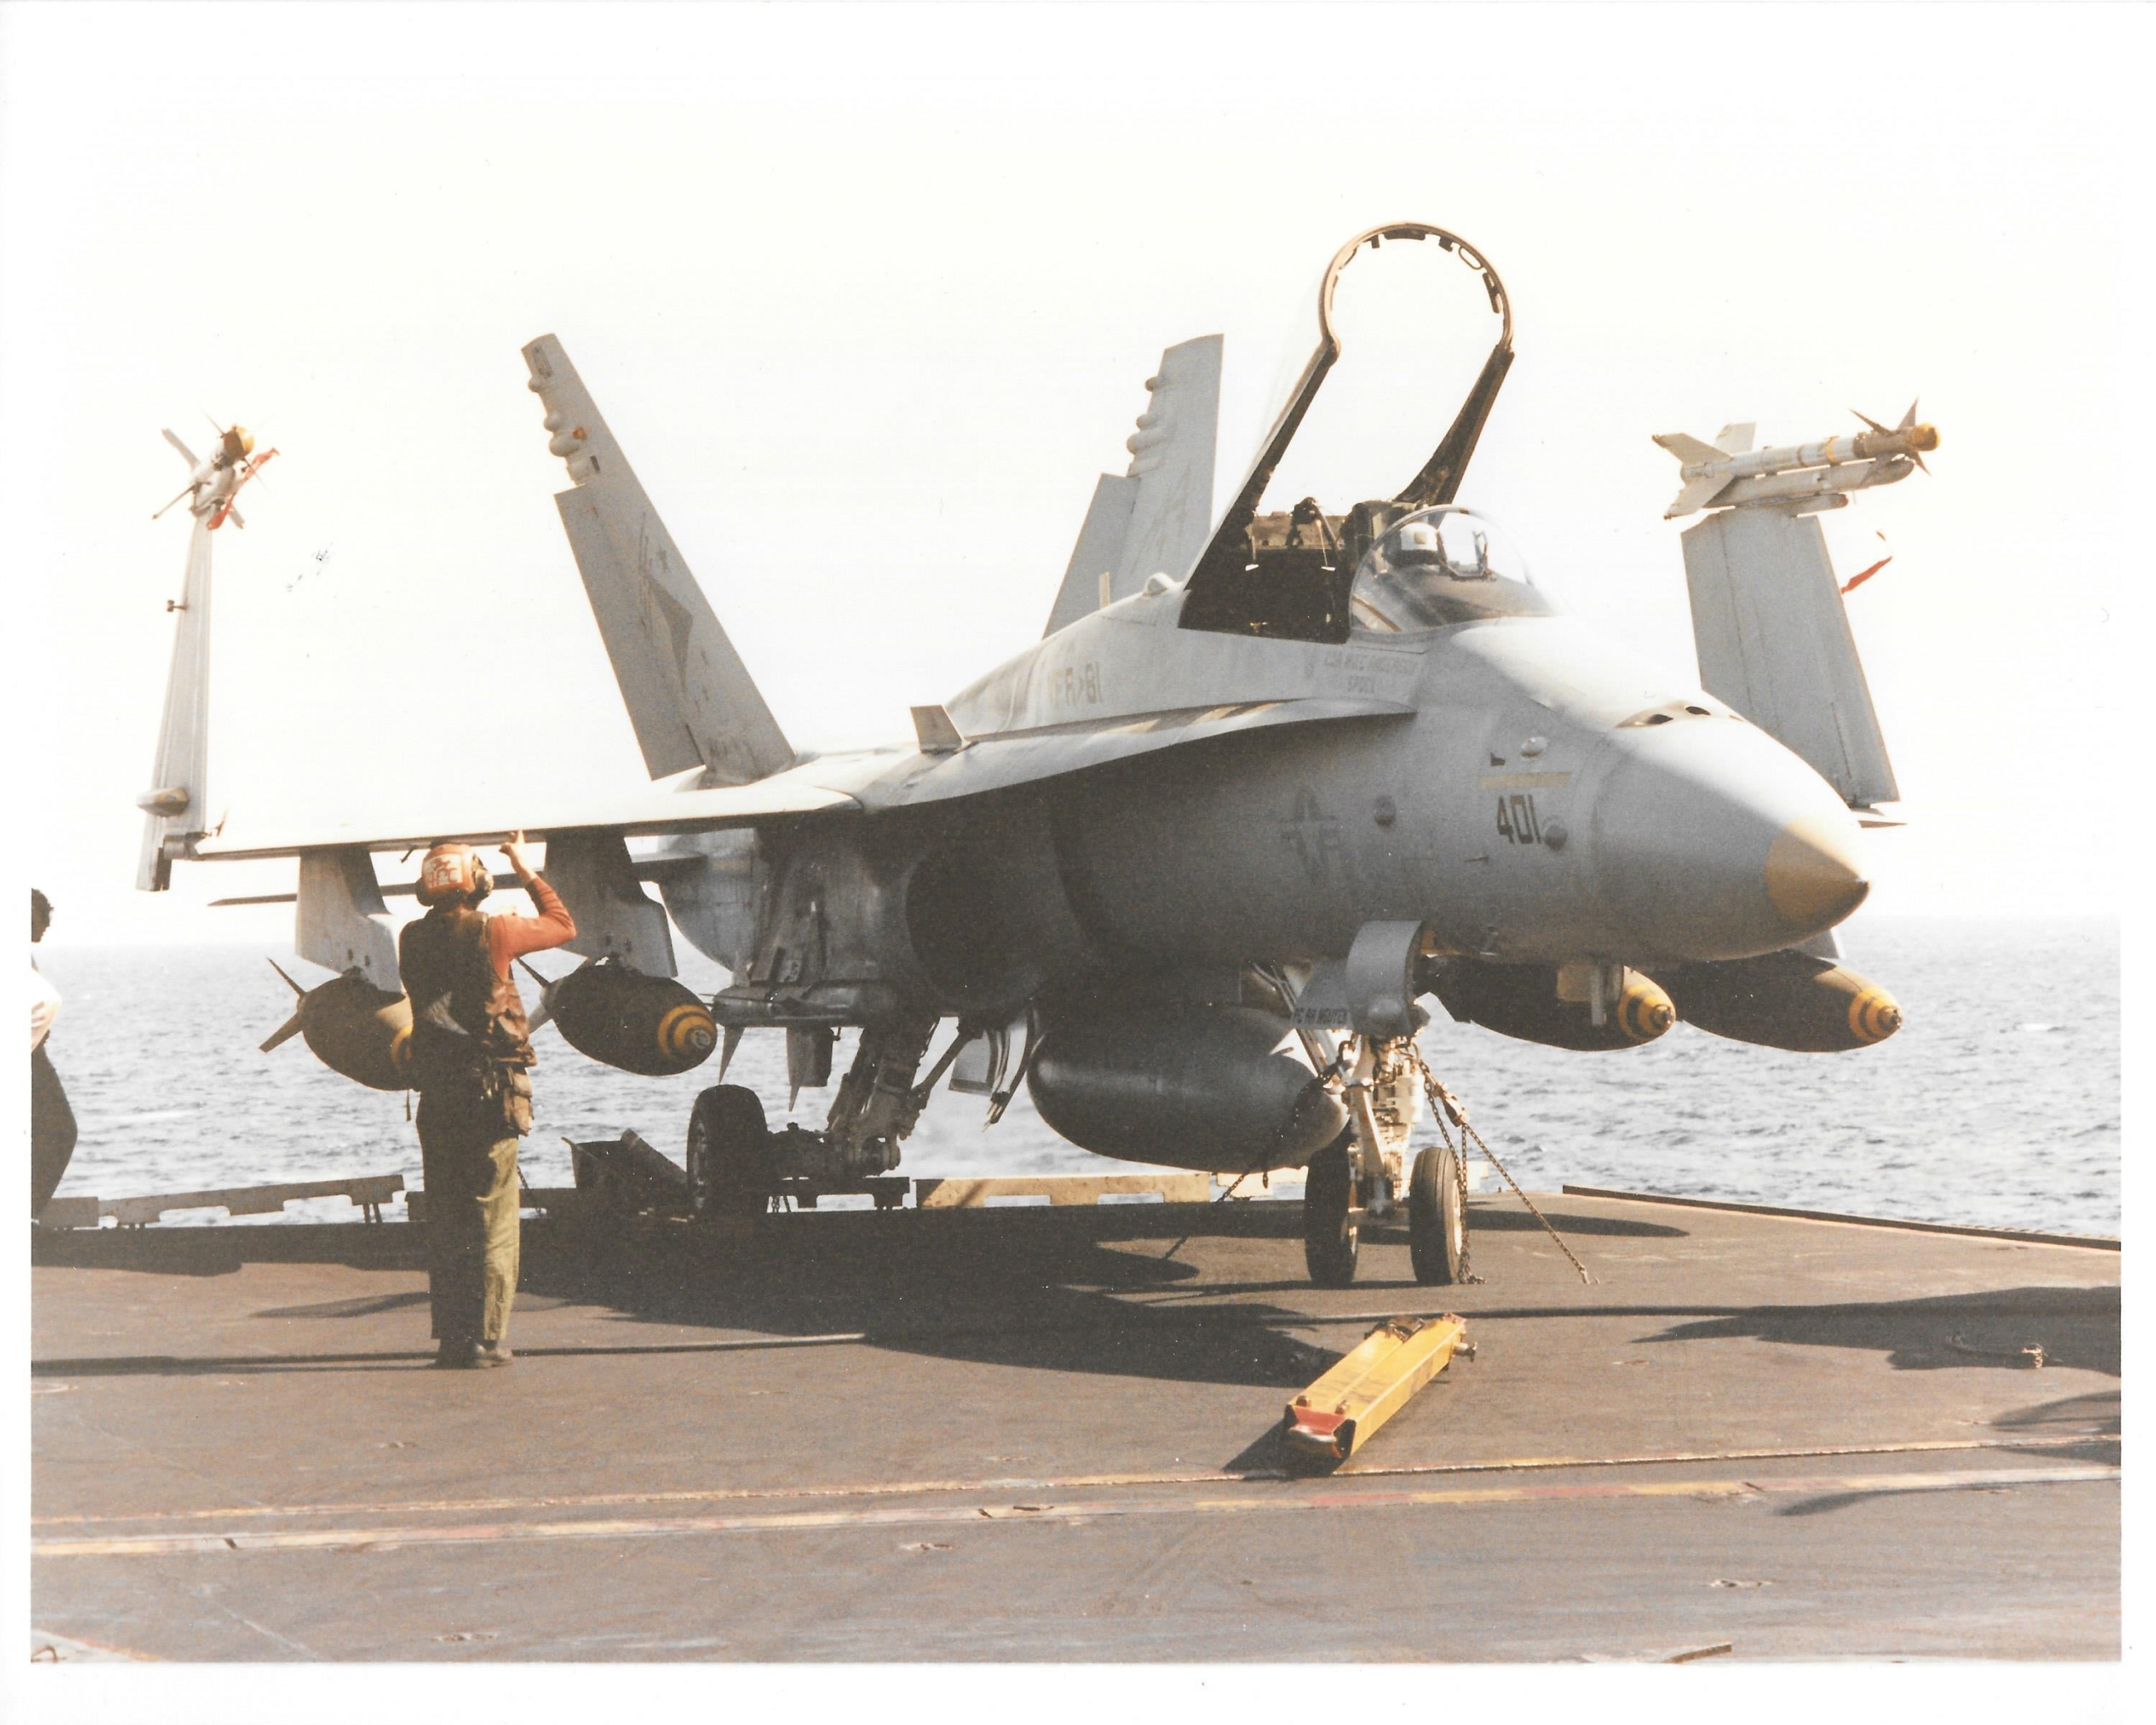 Fox's F/A-18 aboard the USS Saratoga before launching. The MiG profile above the side number on the nose shows it has had one confirmed kill—on Jan. 17, 1991. Photo courtesy of Fox.